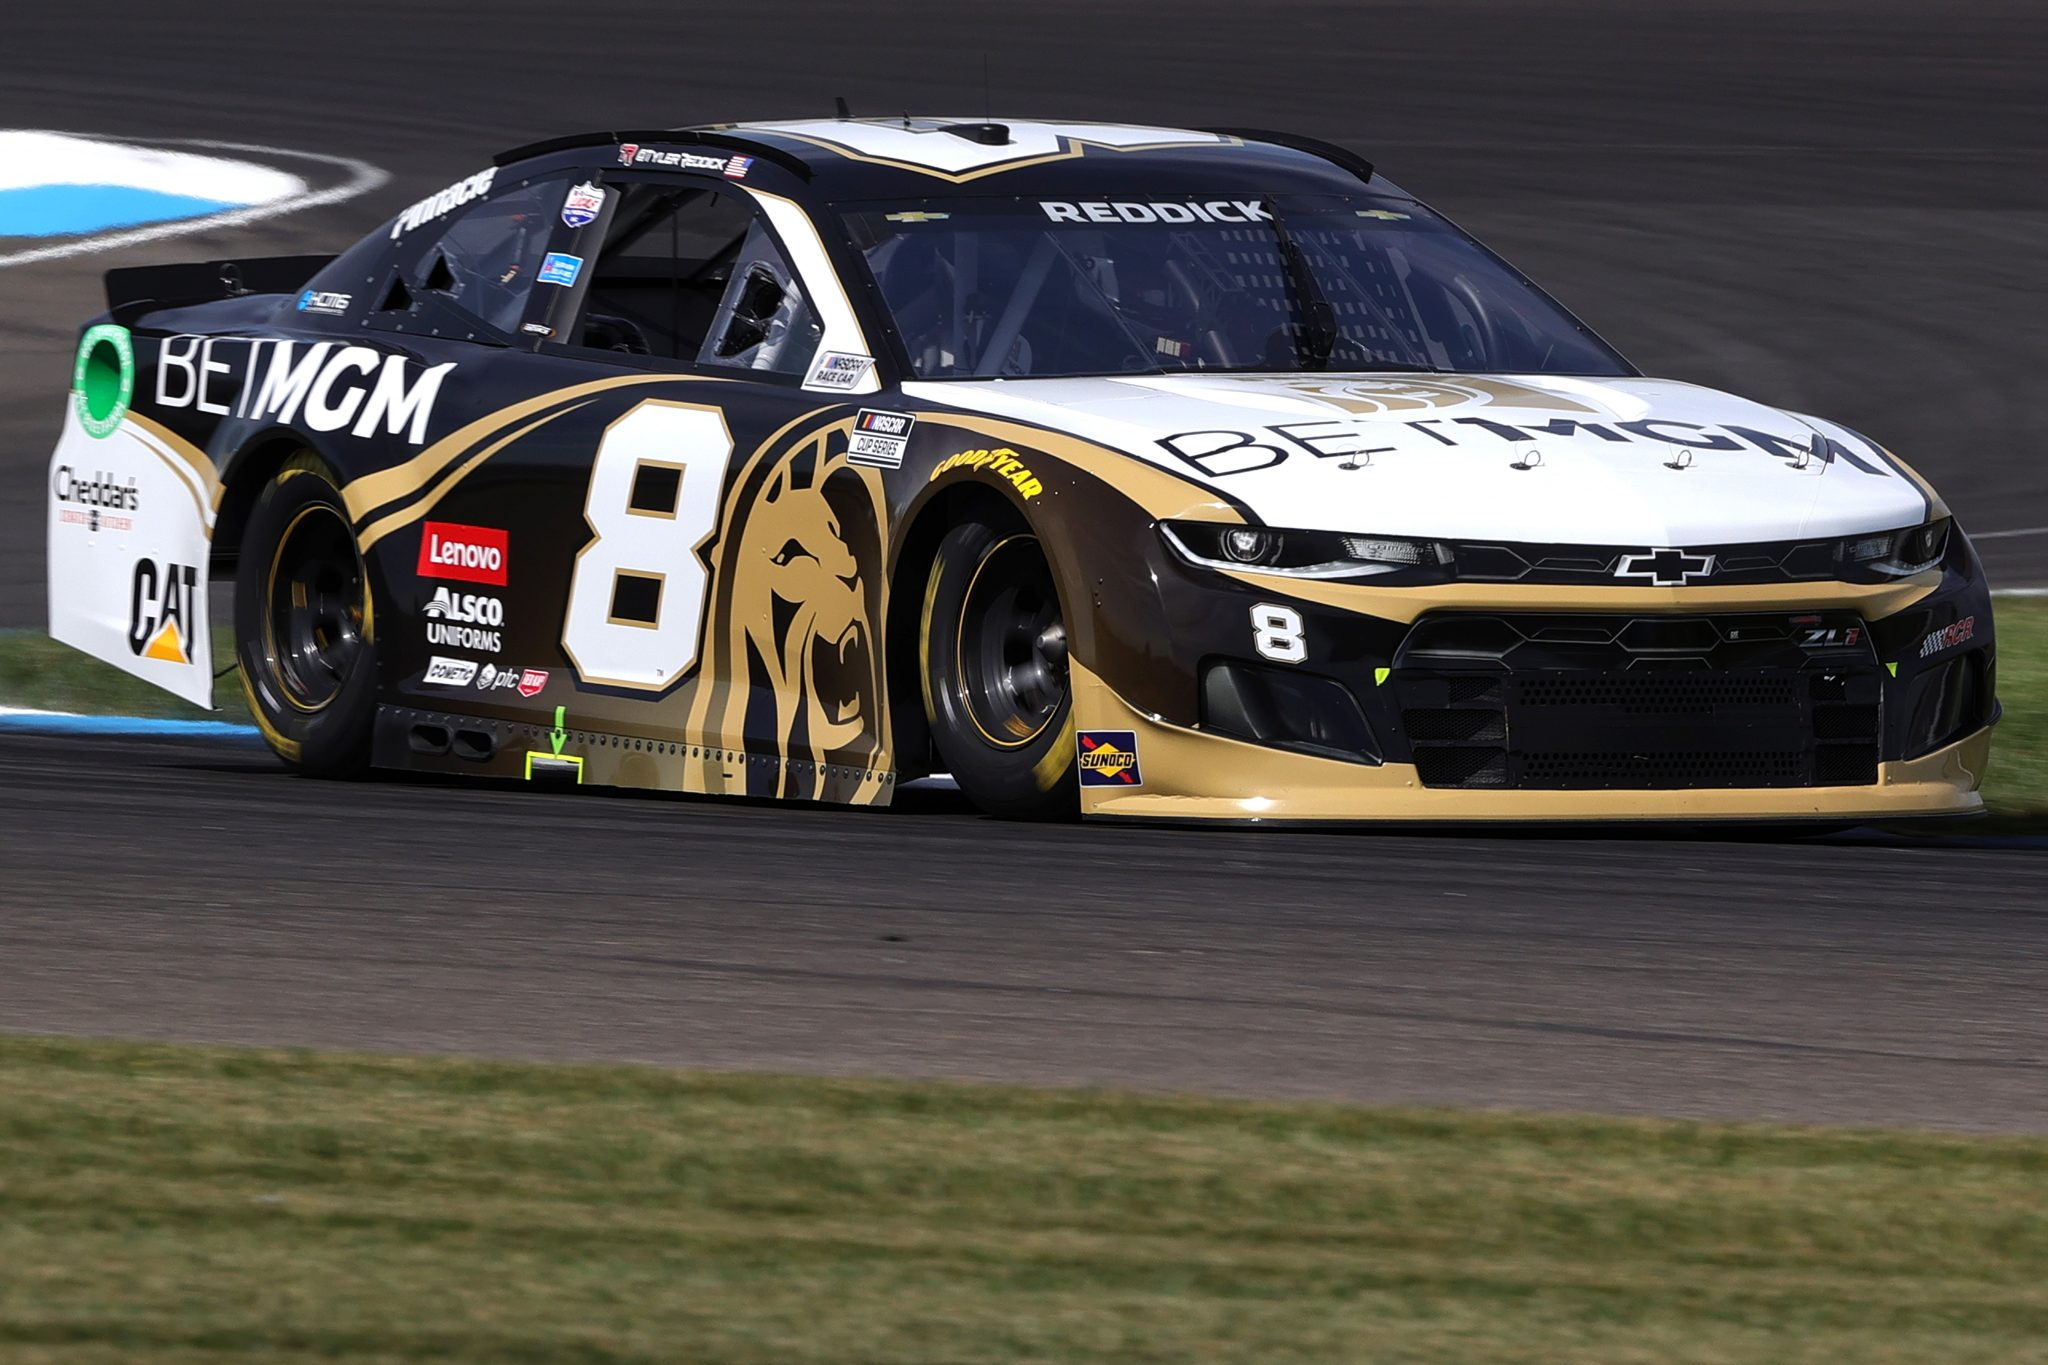 INDIANAPOLIS, INDIANA - AUGUST 14: Tyler Reddick, driver of the #8 BetMGM Chevrolet, drives during practice for the NASCAR Cup Series Verizon 200 at the Brickyard at Indianapolis Motor Speedway on August 14, 2021 in Indianapolis, Indiana. (Photo by Stacy Revere/Getty Images)   Getty Images